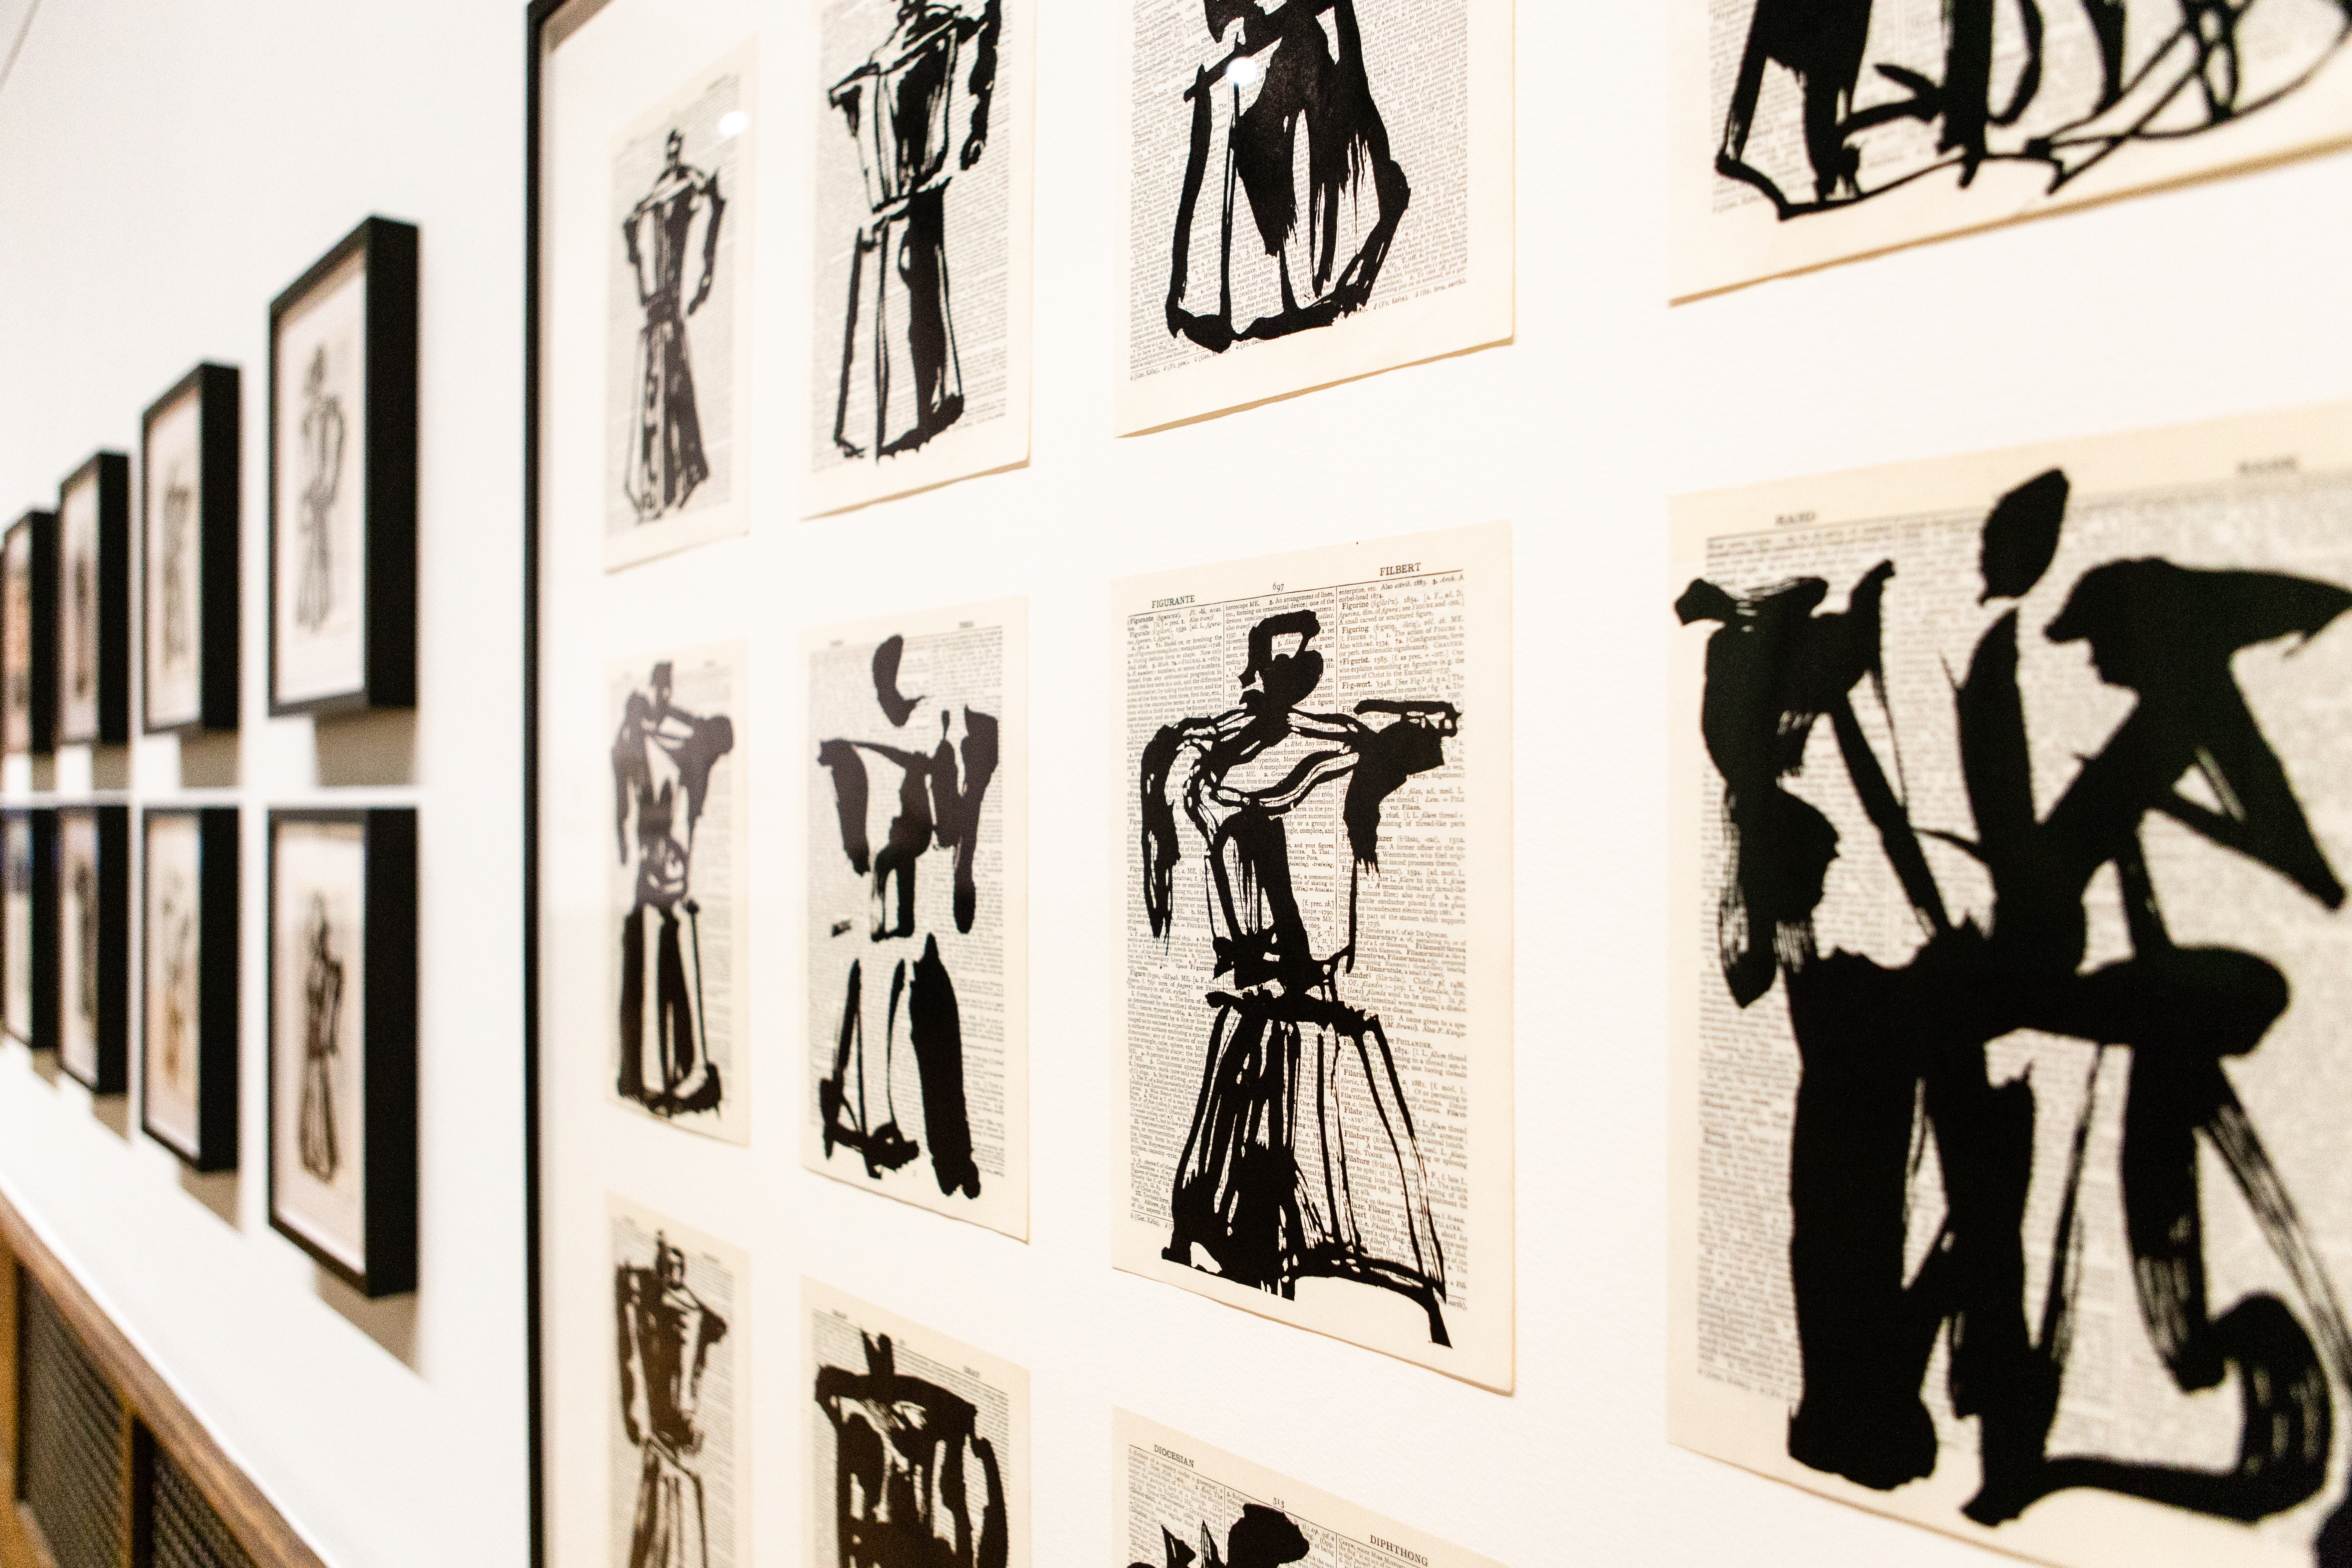 A new exhibition at the arthur ross gallery features linocut prints by south african artist william kentridge